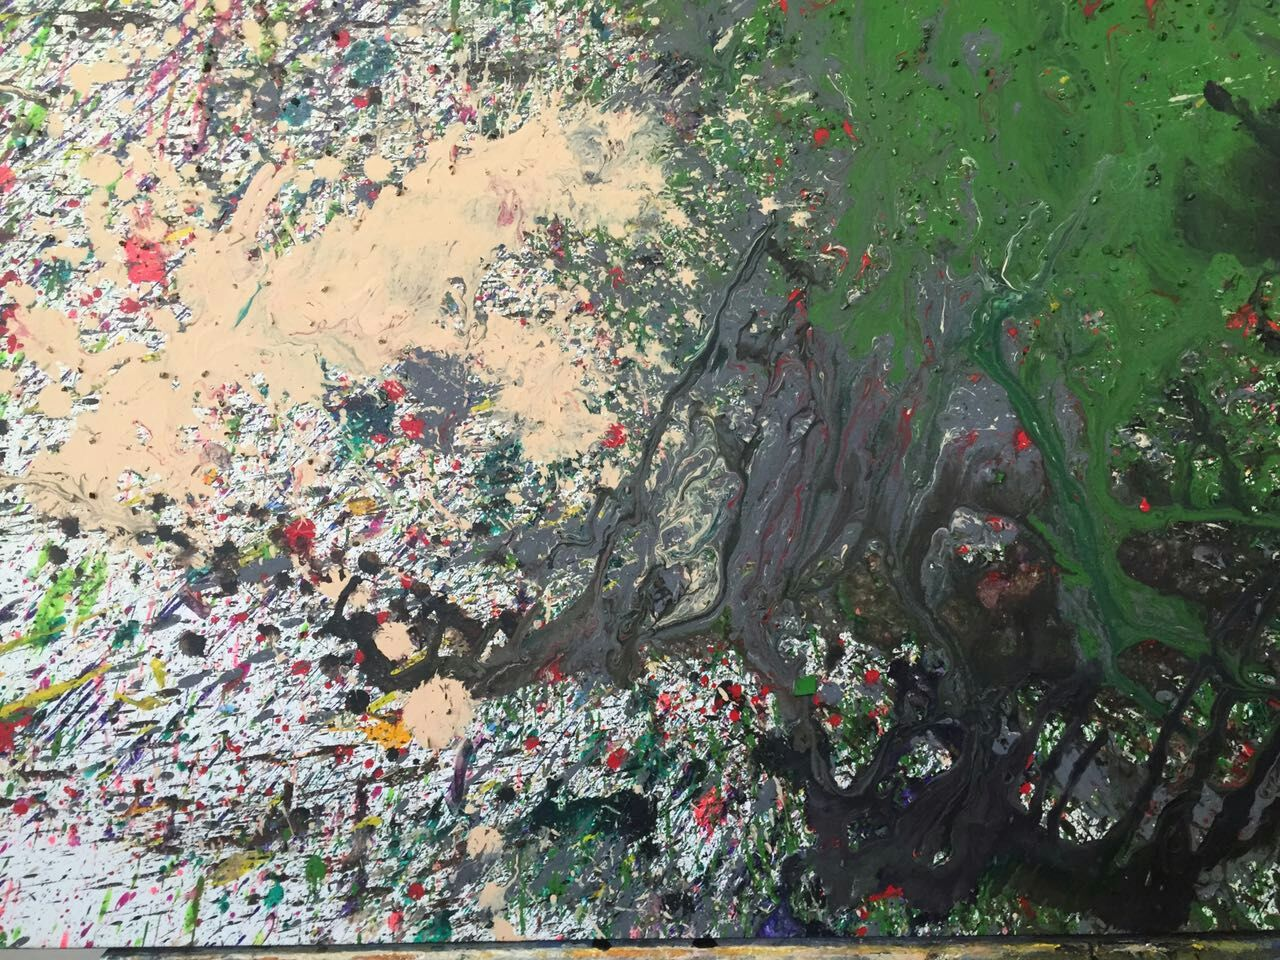 Westlake Ripple artwork by Richard Ting - art listed for sale on Artplode